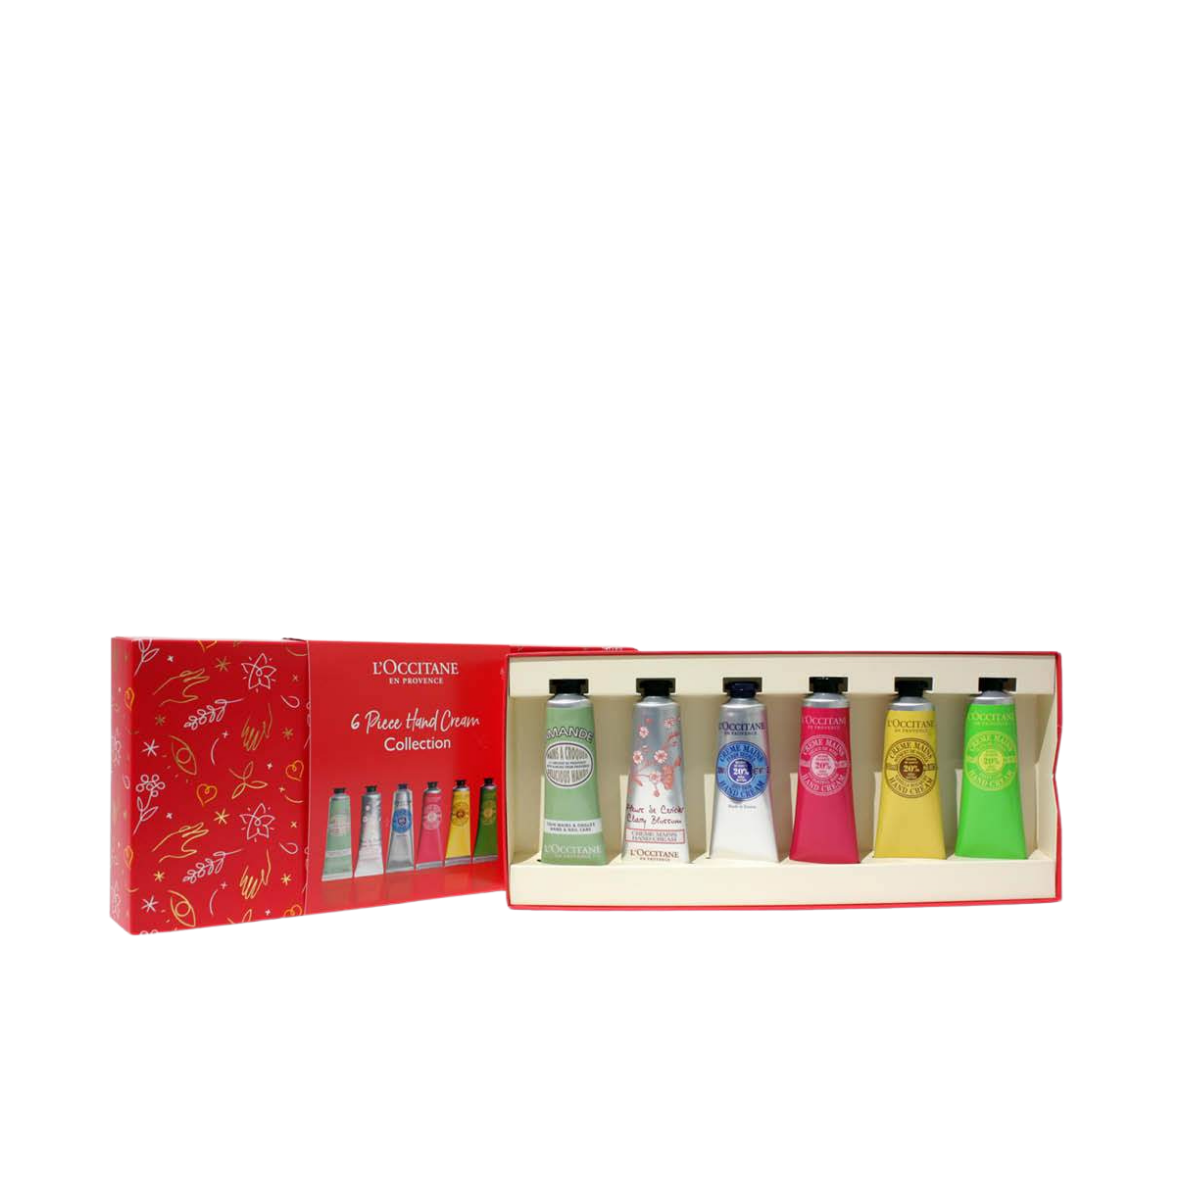 L'Occitane 6-Piece Hand Cream Set